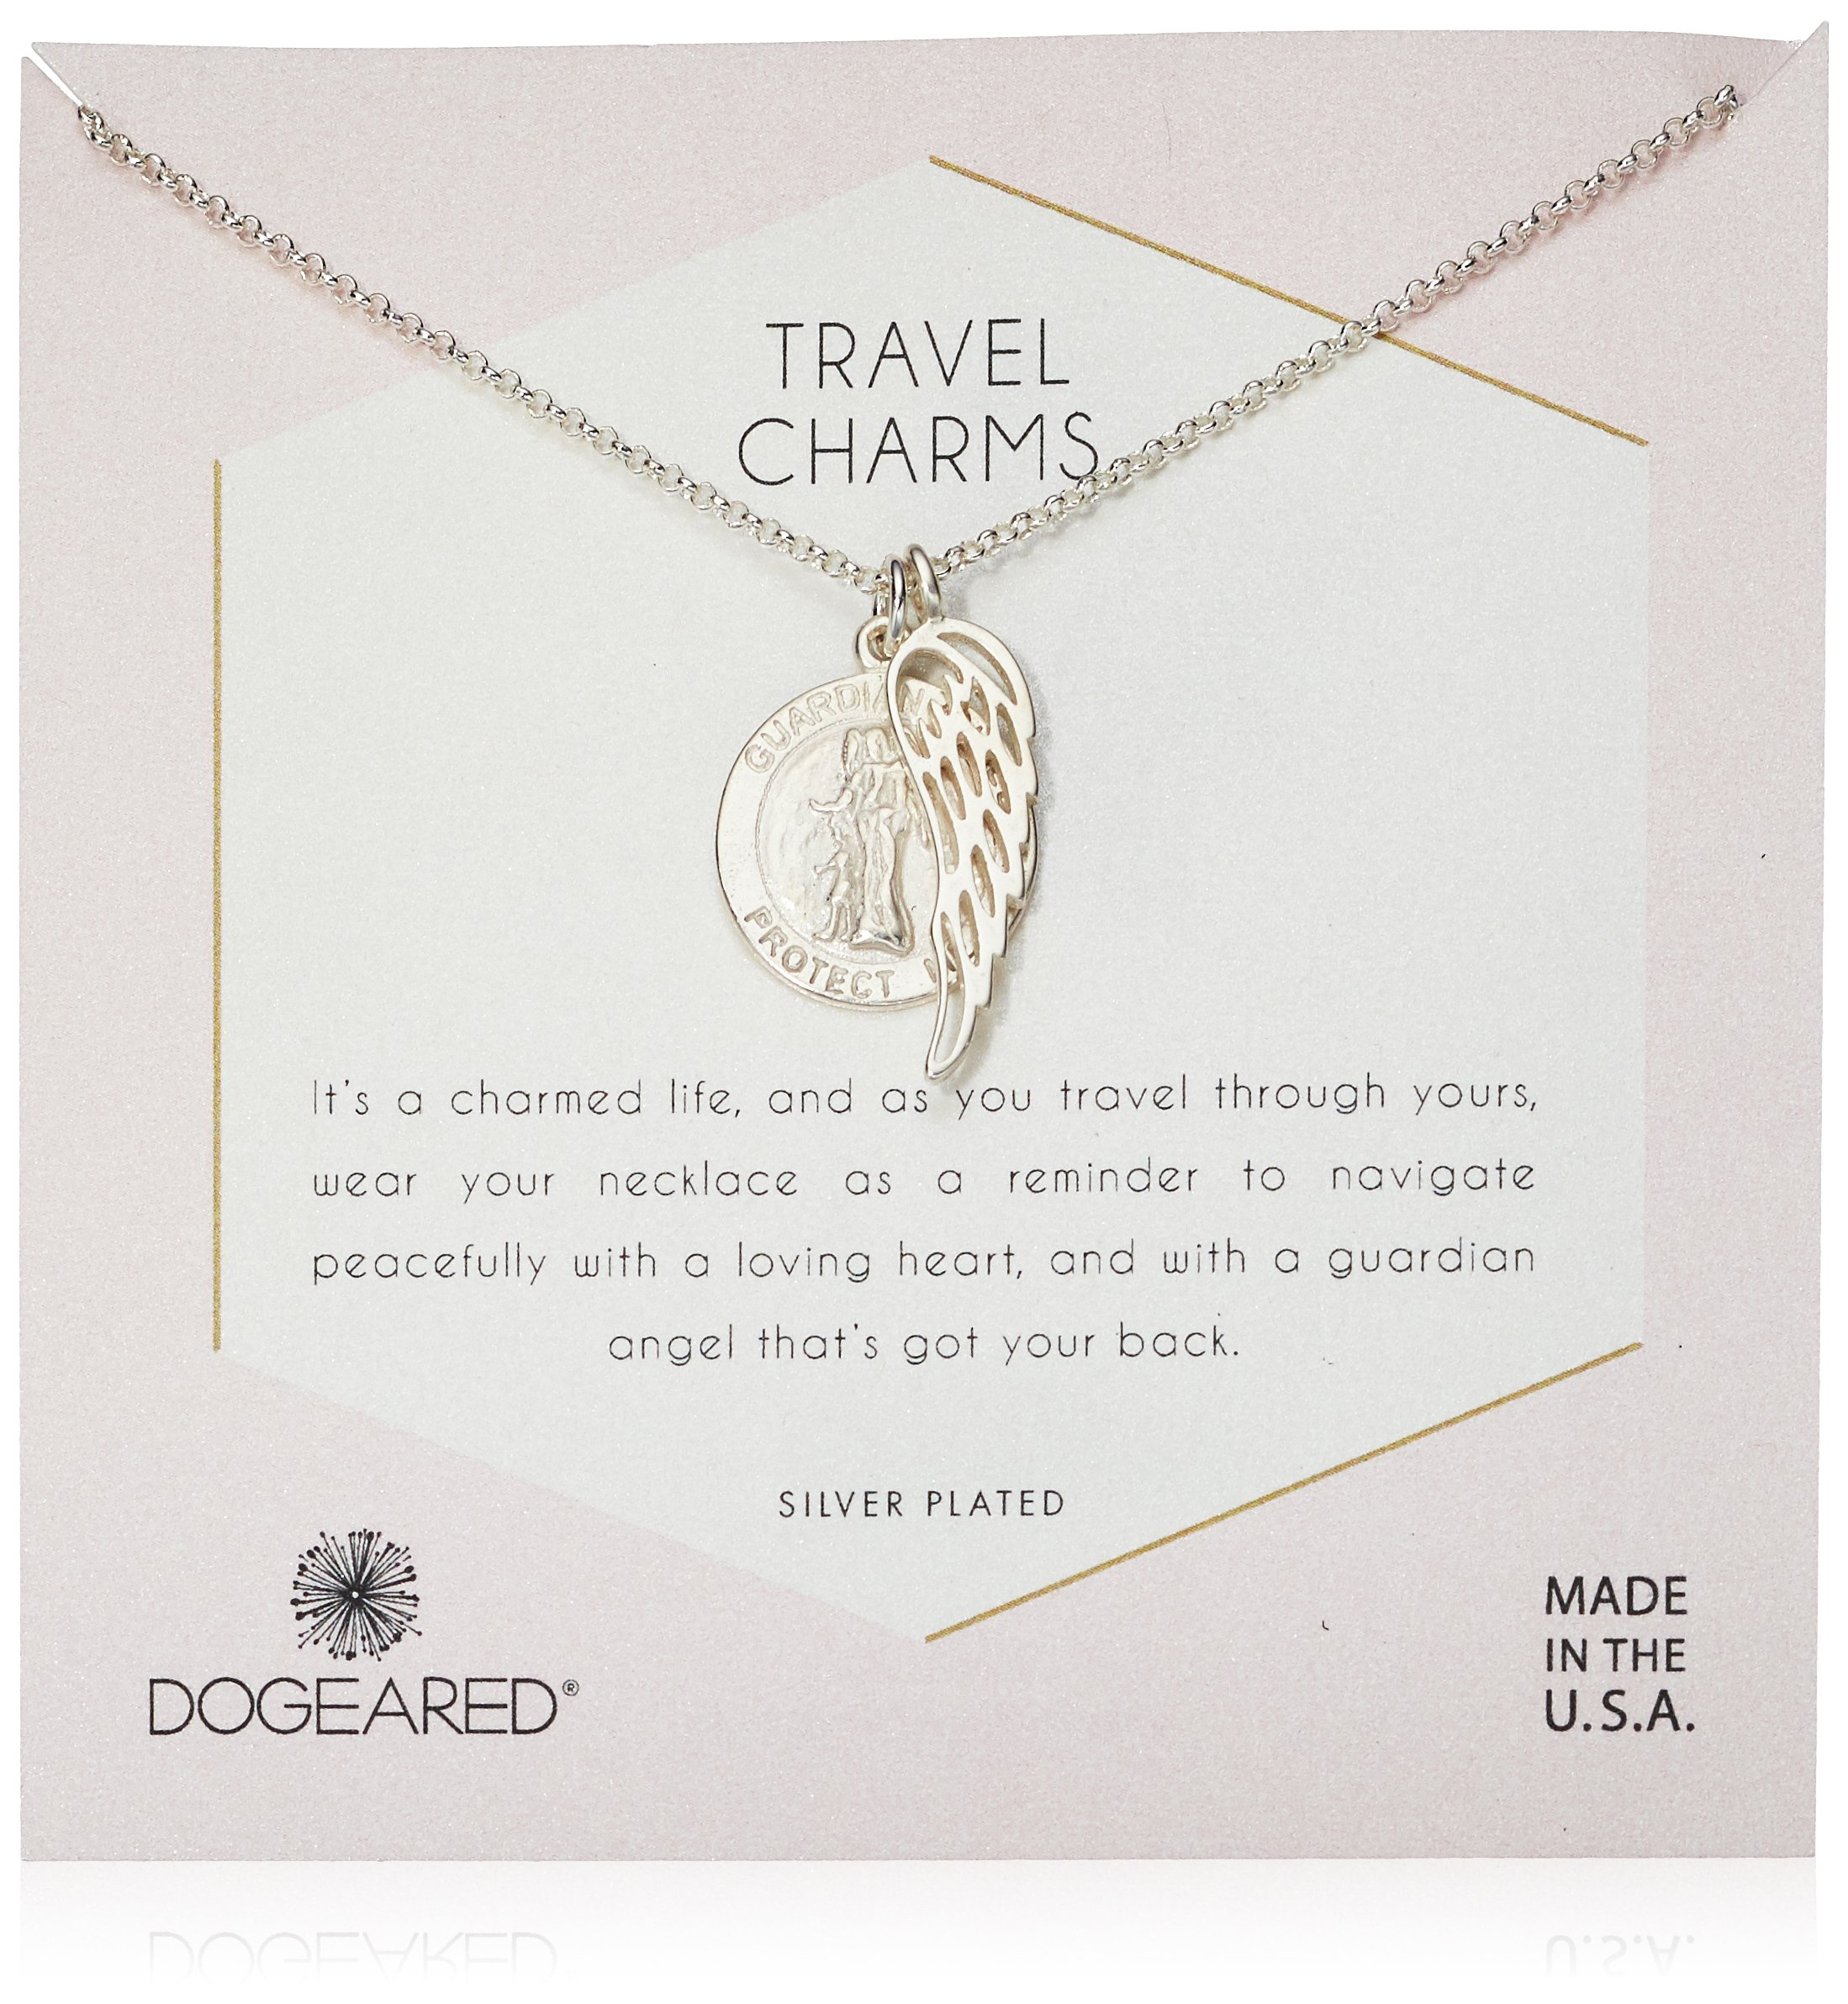 Dogeared Women's Silver Travel Charms Chain Necklace